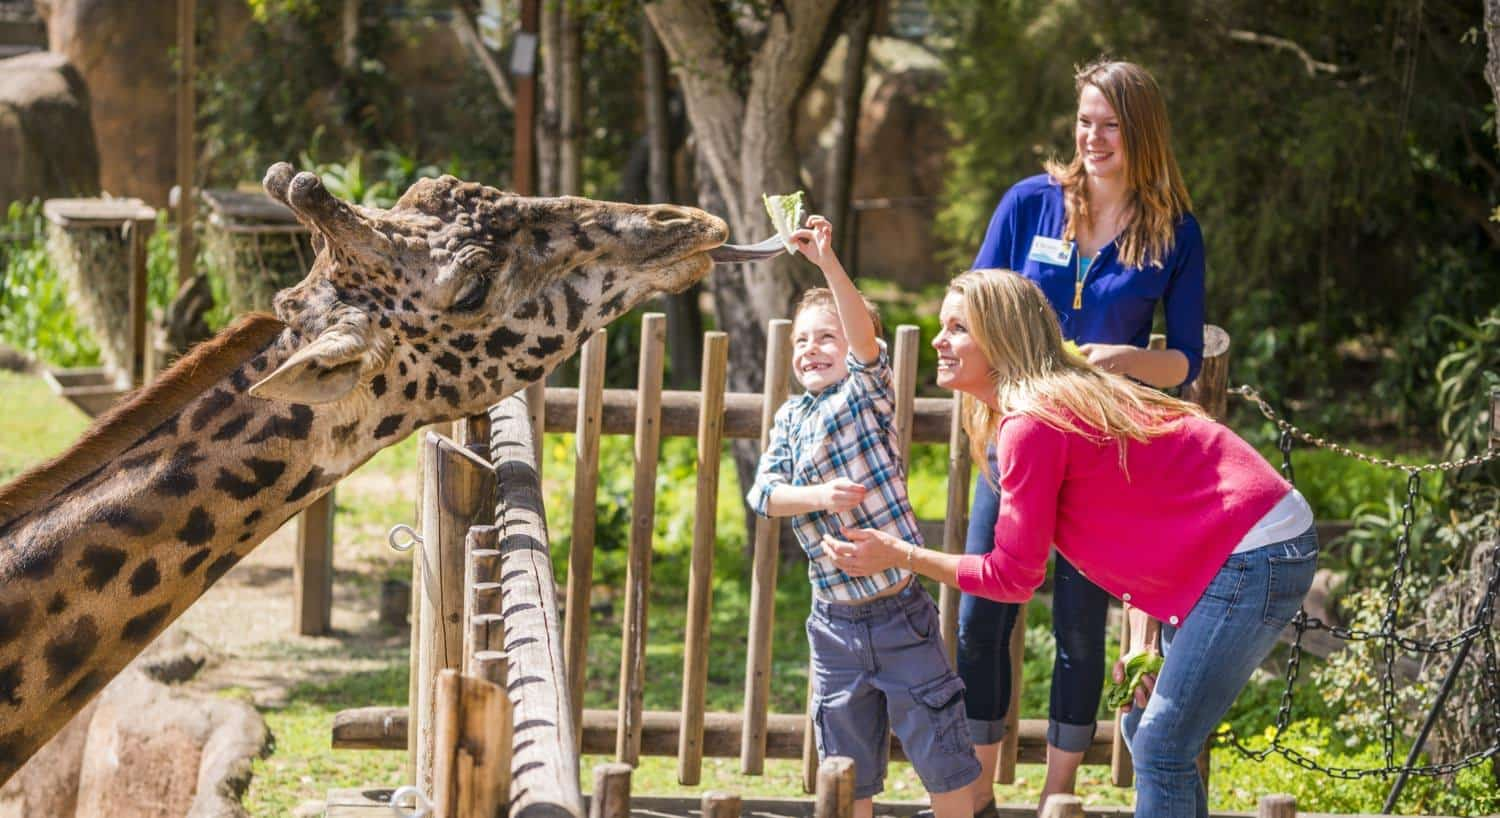 Mother, young son and zoo worker while son feeds giraffe